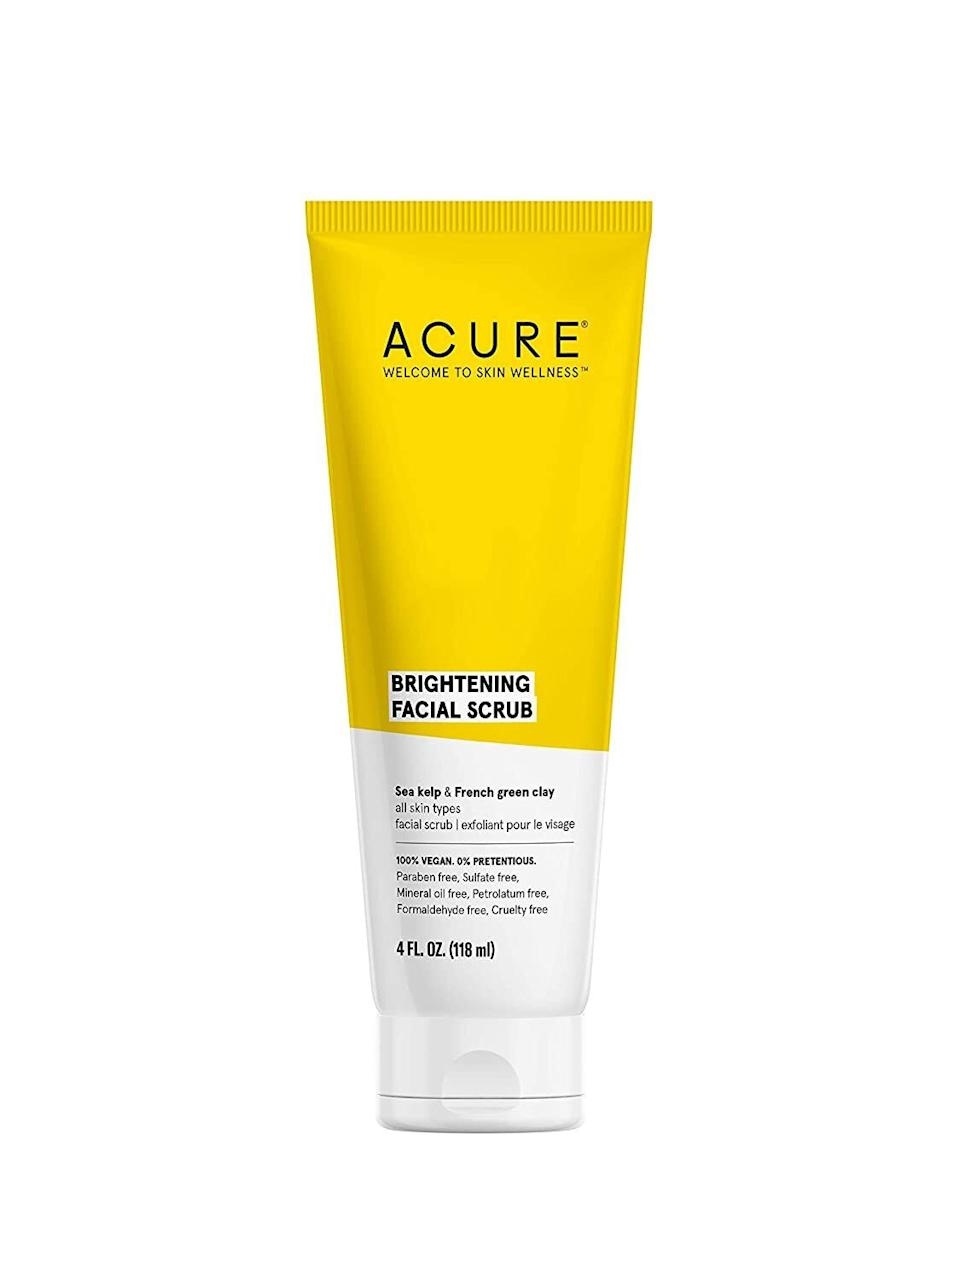 """A combo of lemon peel, French green clay, sea kelp and Madonna lily can exfoliate flaky dead skin cells and unclog your pores to help minimize breakouts.<br /><br /><strong>Promising review:</strong>""""I swear your skin can NOT get any cleaner after using this glorious product.<strong>I even have my boyfriend using it, when he previously just used soap on his face, ugh.</strong>But this exfoliating cleanser is perfection! You can feel an instant difference and no wonder why Allure rated it one of their best and highly reviewed beauty products. You can't lose with this stuff."""" —<a href=""""https://amzn.to/3tNHyxs"""" target=""""_blank"""" rel=""""nofollow noopener noreferrer"""" data-skimlinks-tracking=""""5909265"""" data-vars-affiliate=""""Amazon"""" data-vars-href=""""https://www.amazon.com/gp/customer-reviews/RT3AOGFXBC1SH?tag=bfmelanie-20&ascsubtag=5909265%2C34%2C36%2Cmobile_web%2C0%2C0%2C16567473"""" data-vars-keywords=""""cleaning"""" data-vars-link-id=""""16567473"""" data-vars-price="""""""" data-vars-product-id=""""15937162"""" data-vars-retailers=""""Amazon"""">Brian Shocklee</a><br /><br /><strong>Get it from Amazon for <a href=""""https://amzn.to/32SLXmZ"""" target=""""_blank"""" rel=""""noopener noreferrer"""">$9.50</a>.<br /></strong><i><br /></i>"""